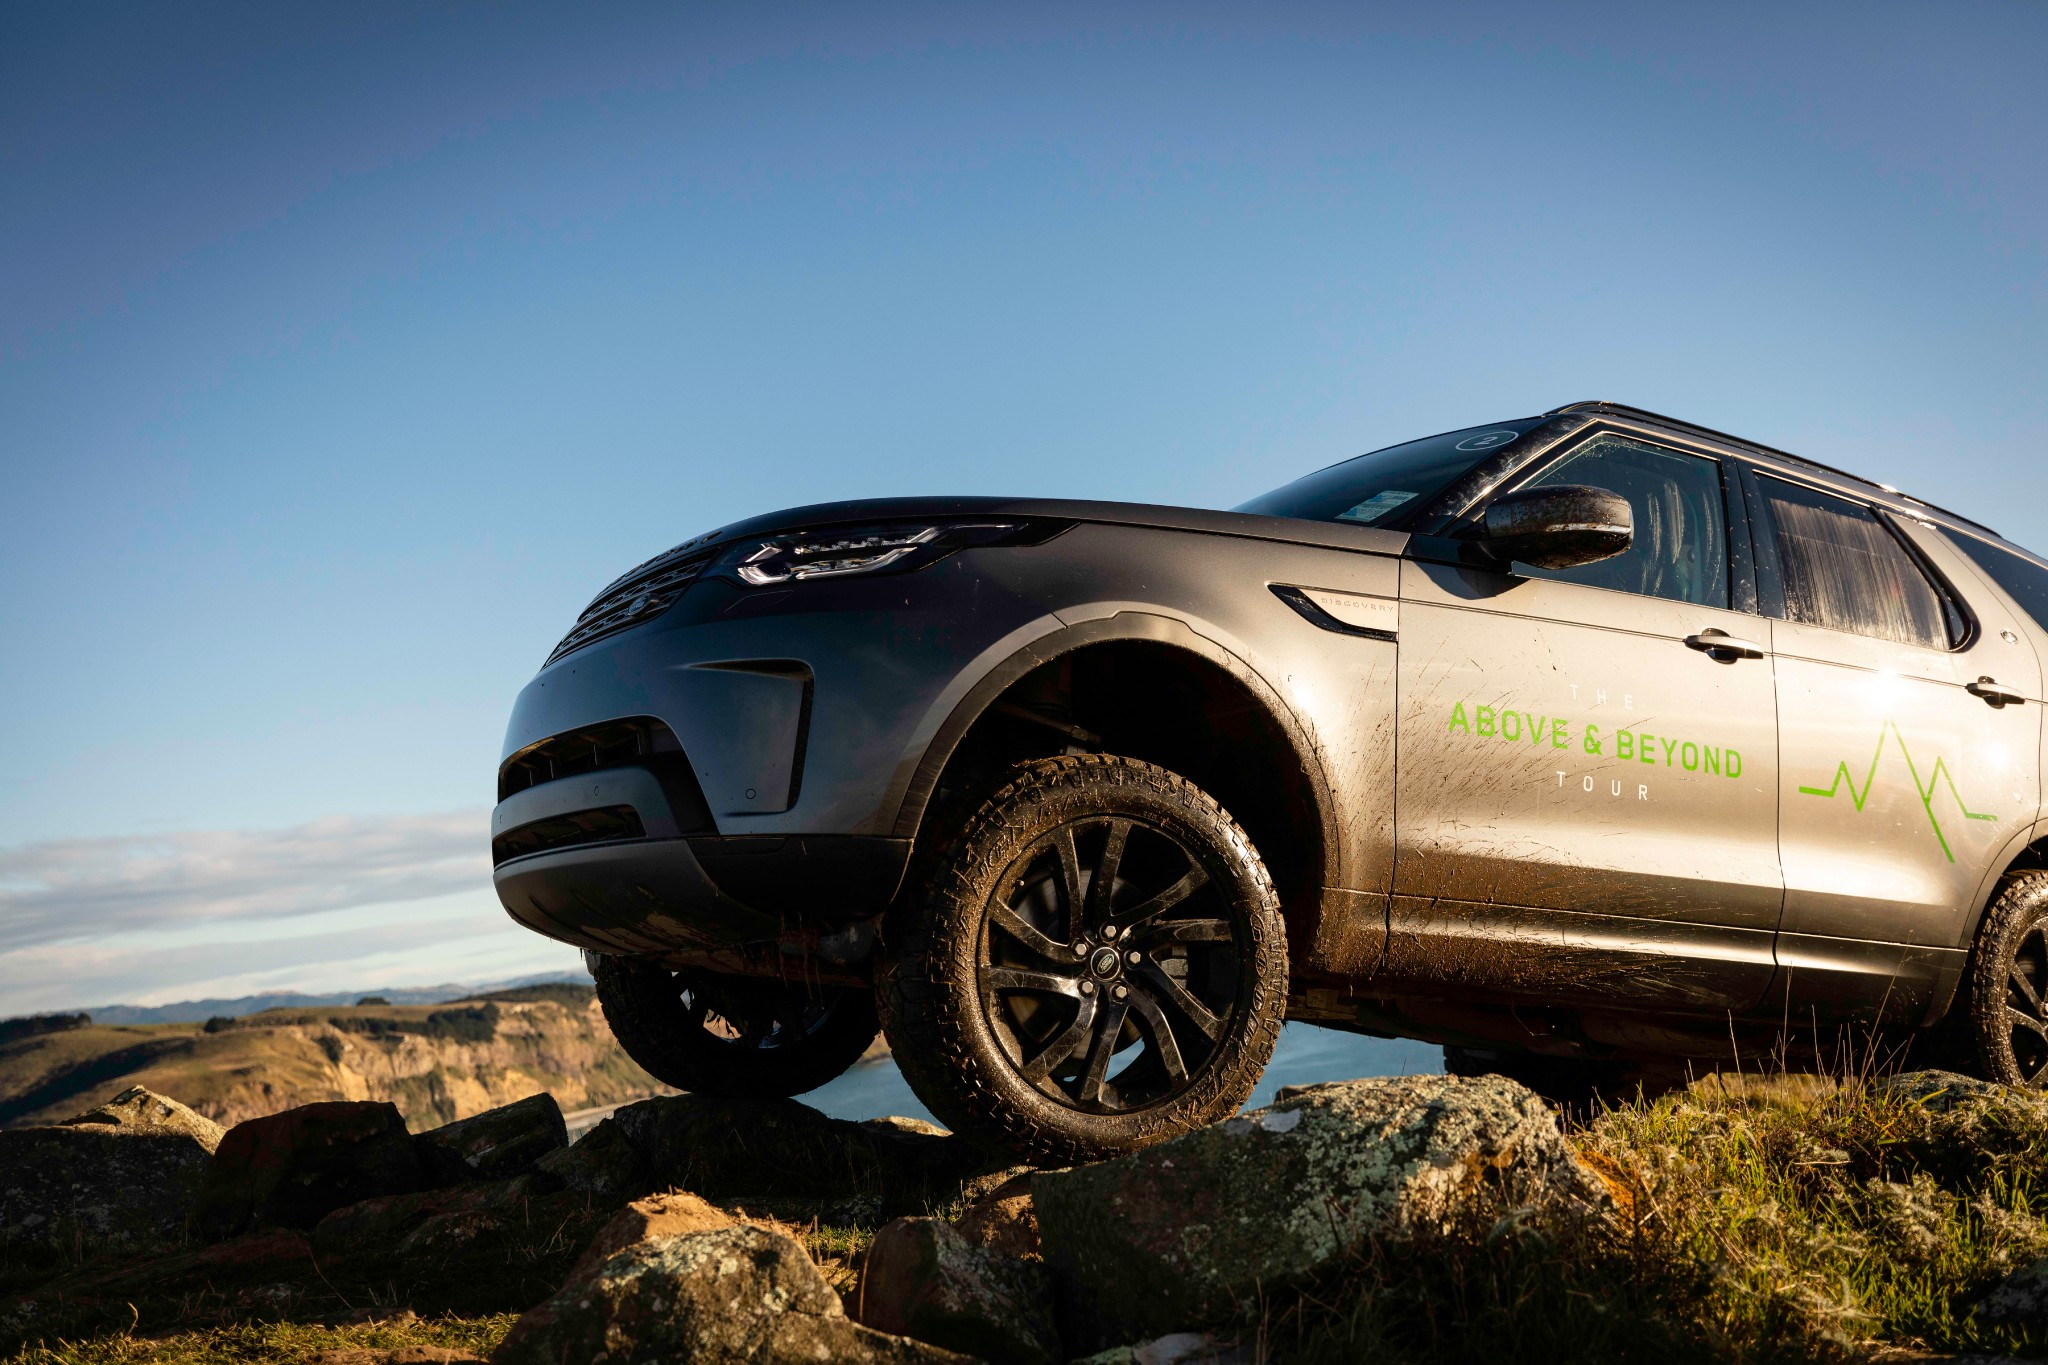 LAND_ROVER_EVENT-0343_preview.jpeg